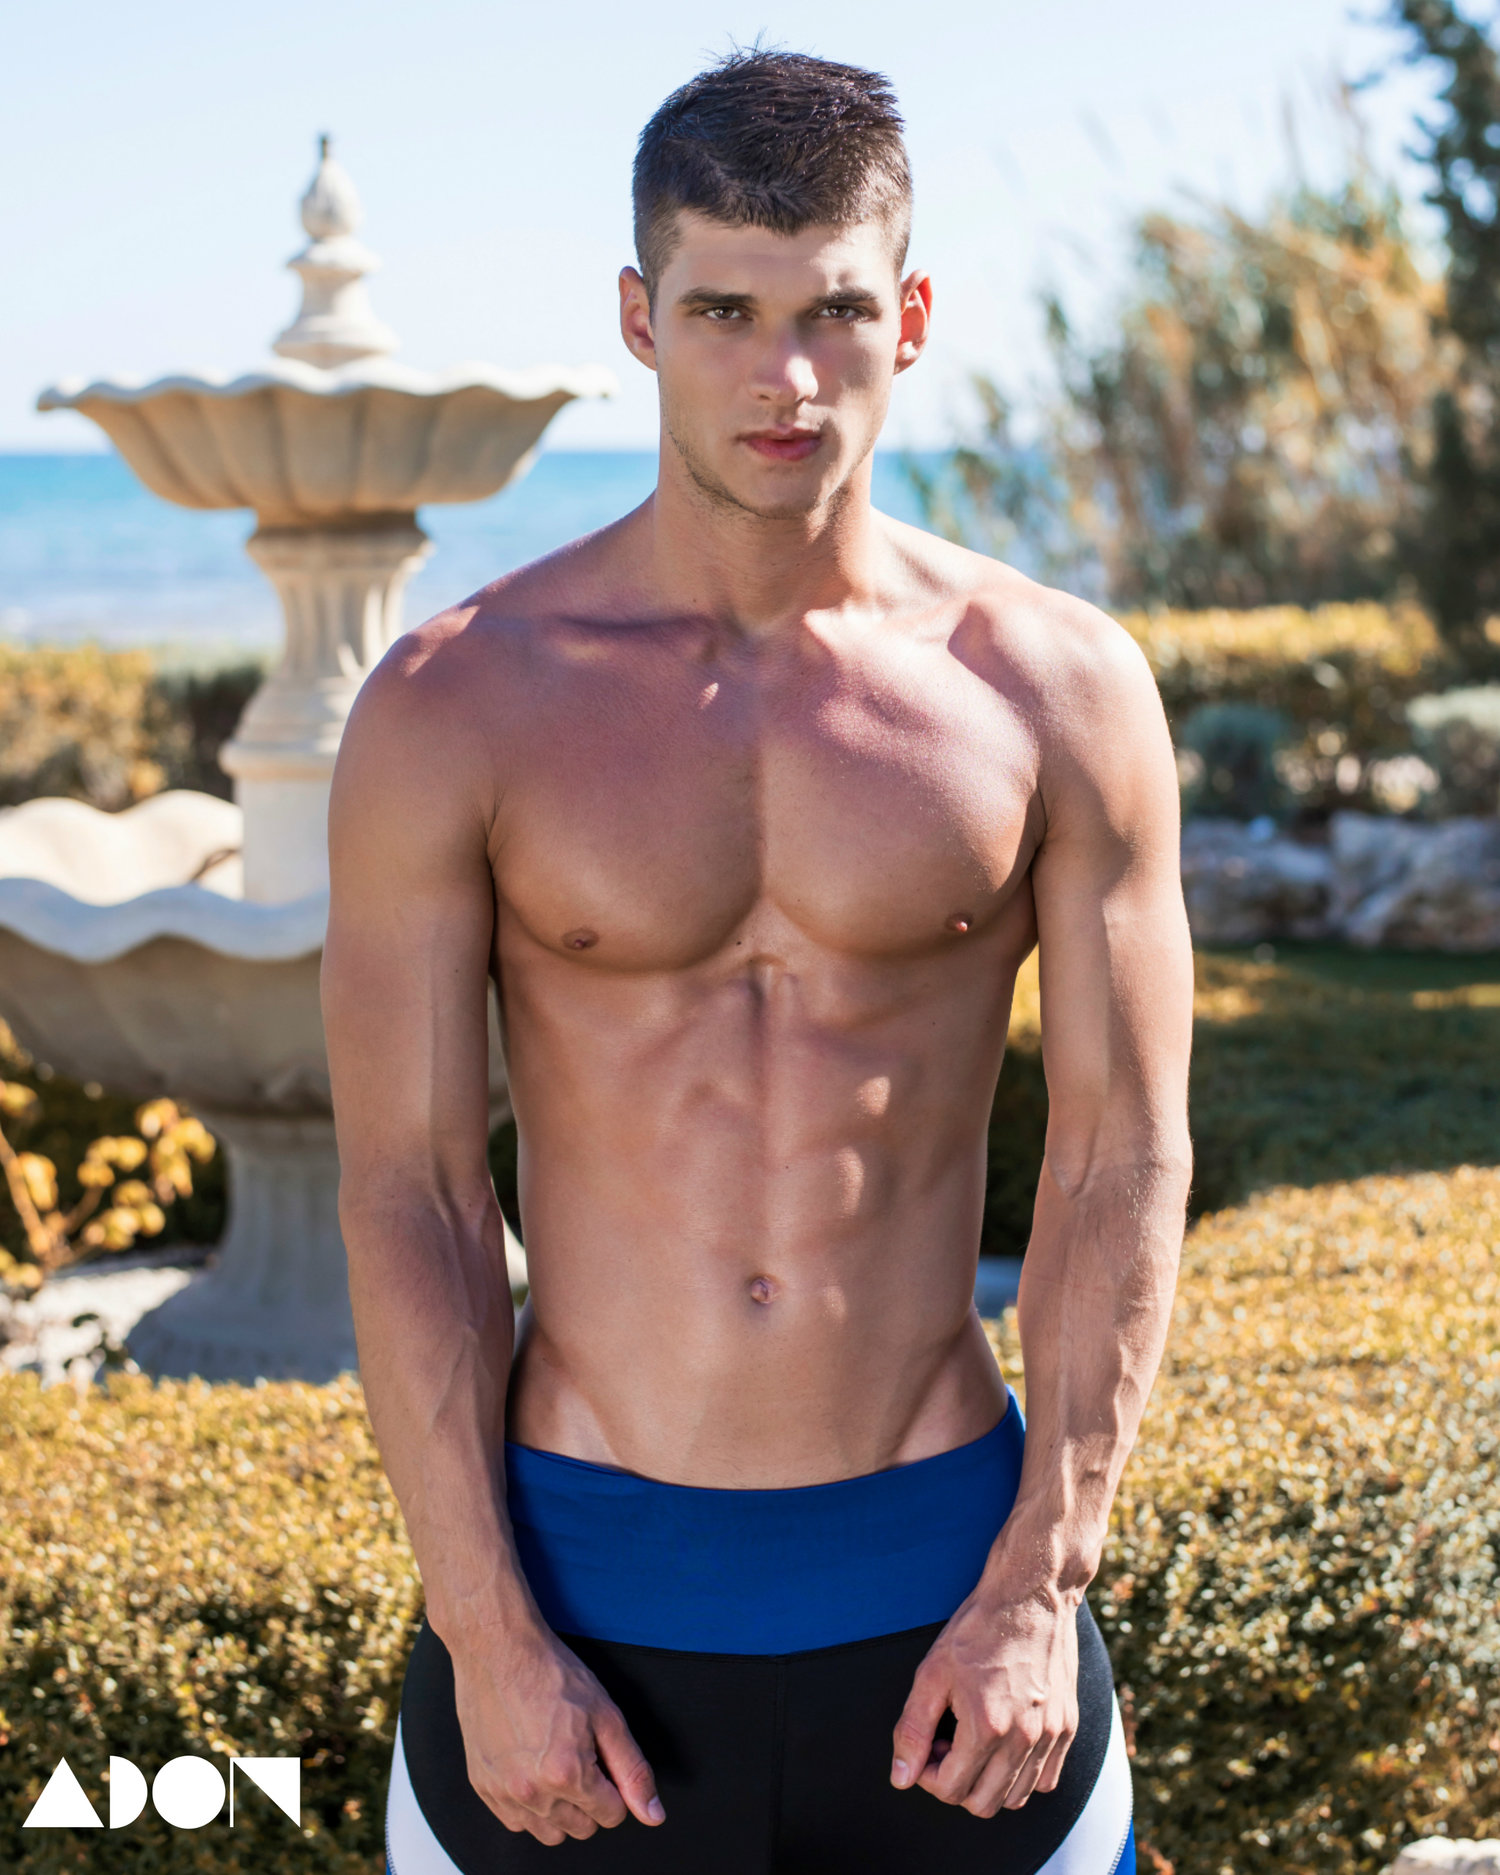 Adon Exclusive: Model Philipp Brem By Stavros Christodoulou